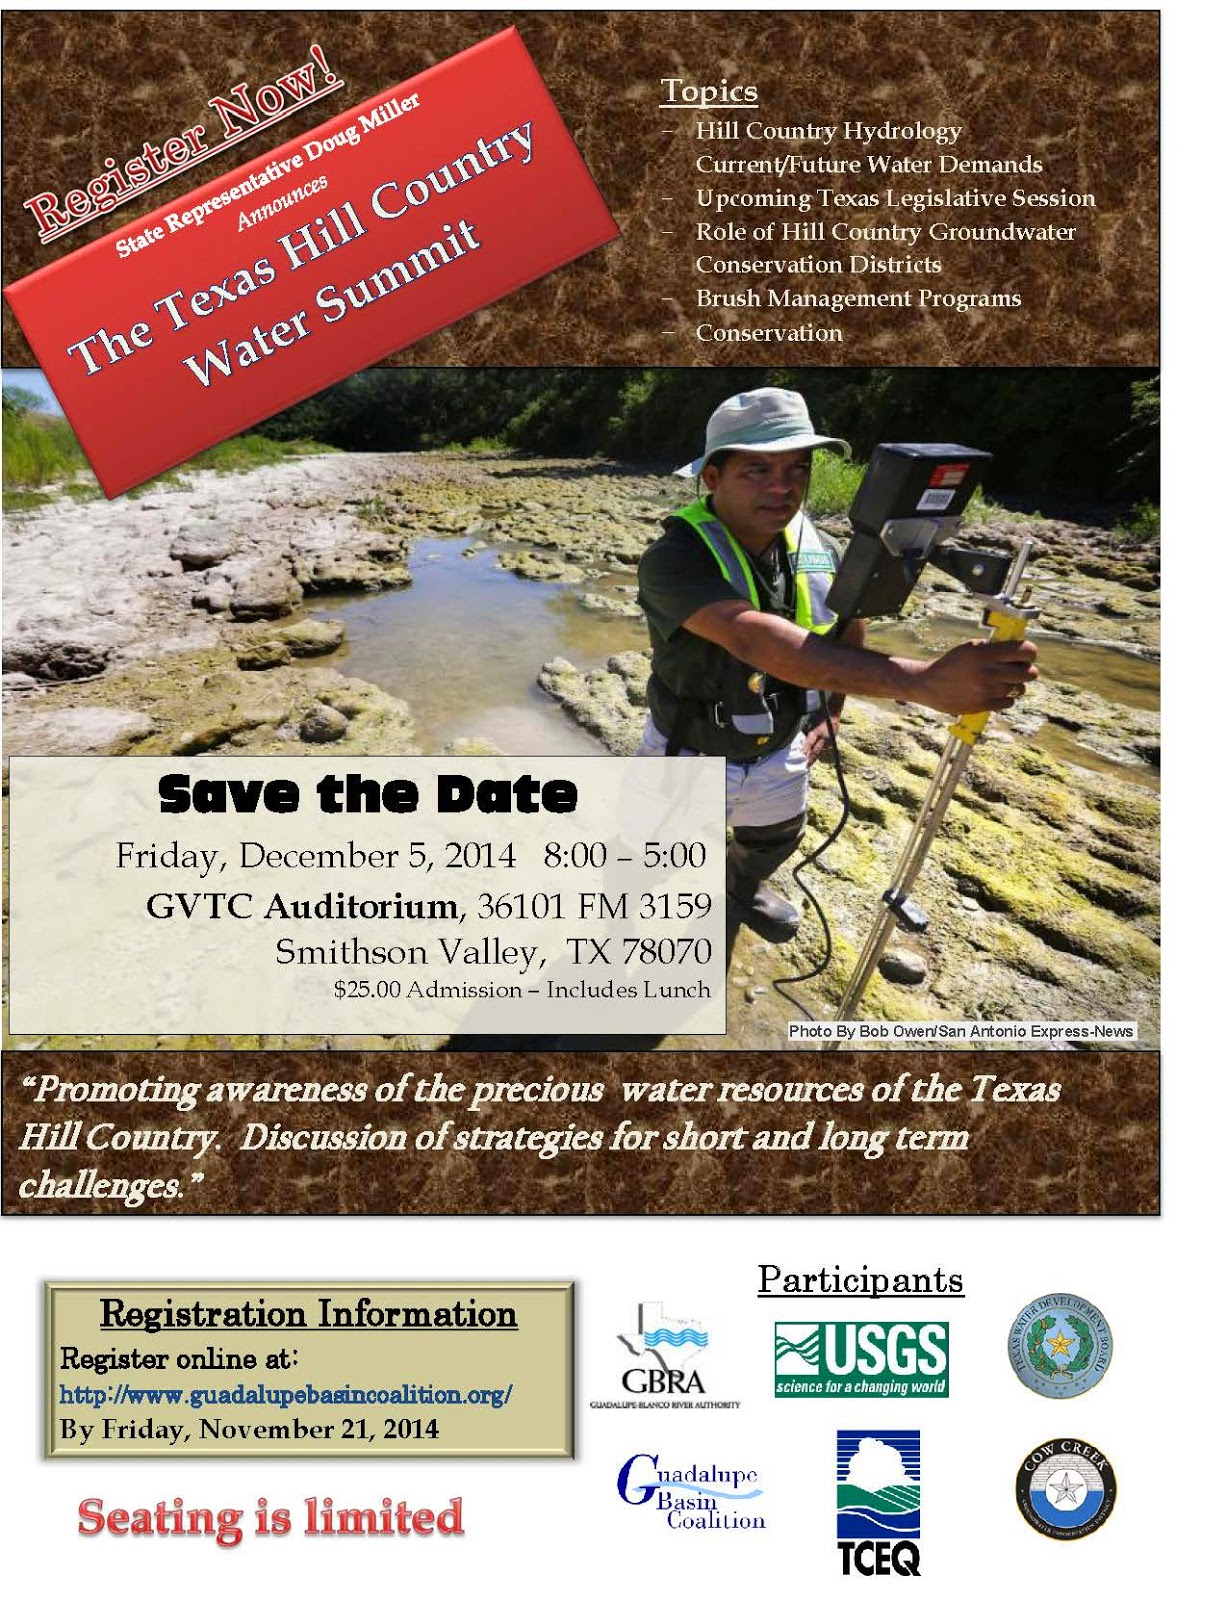 http://guadalupebasincoalition.org/thcwatersummitflyer.pdf